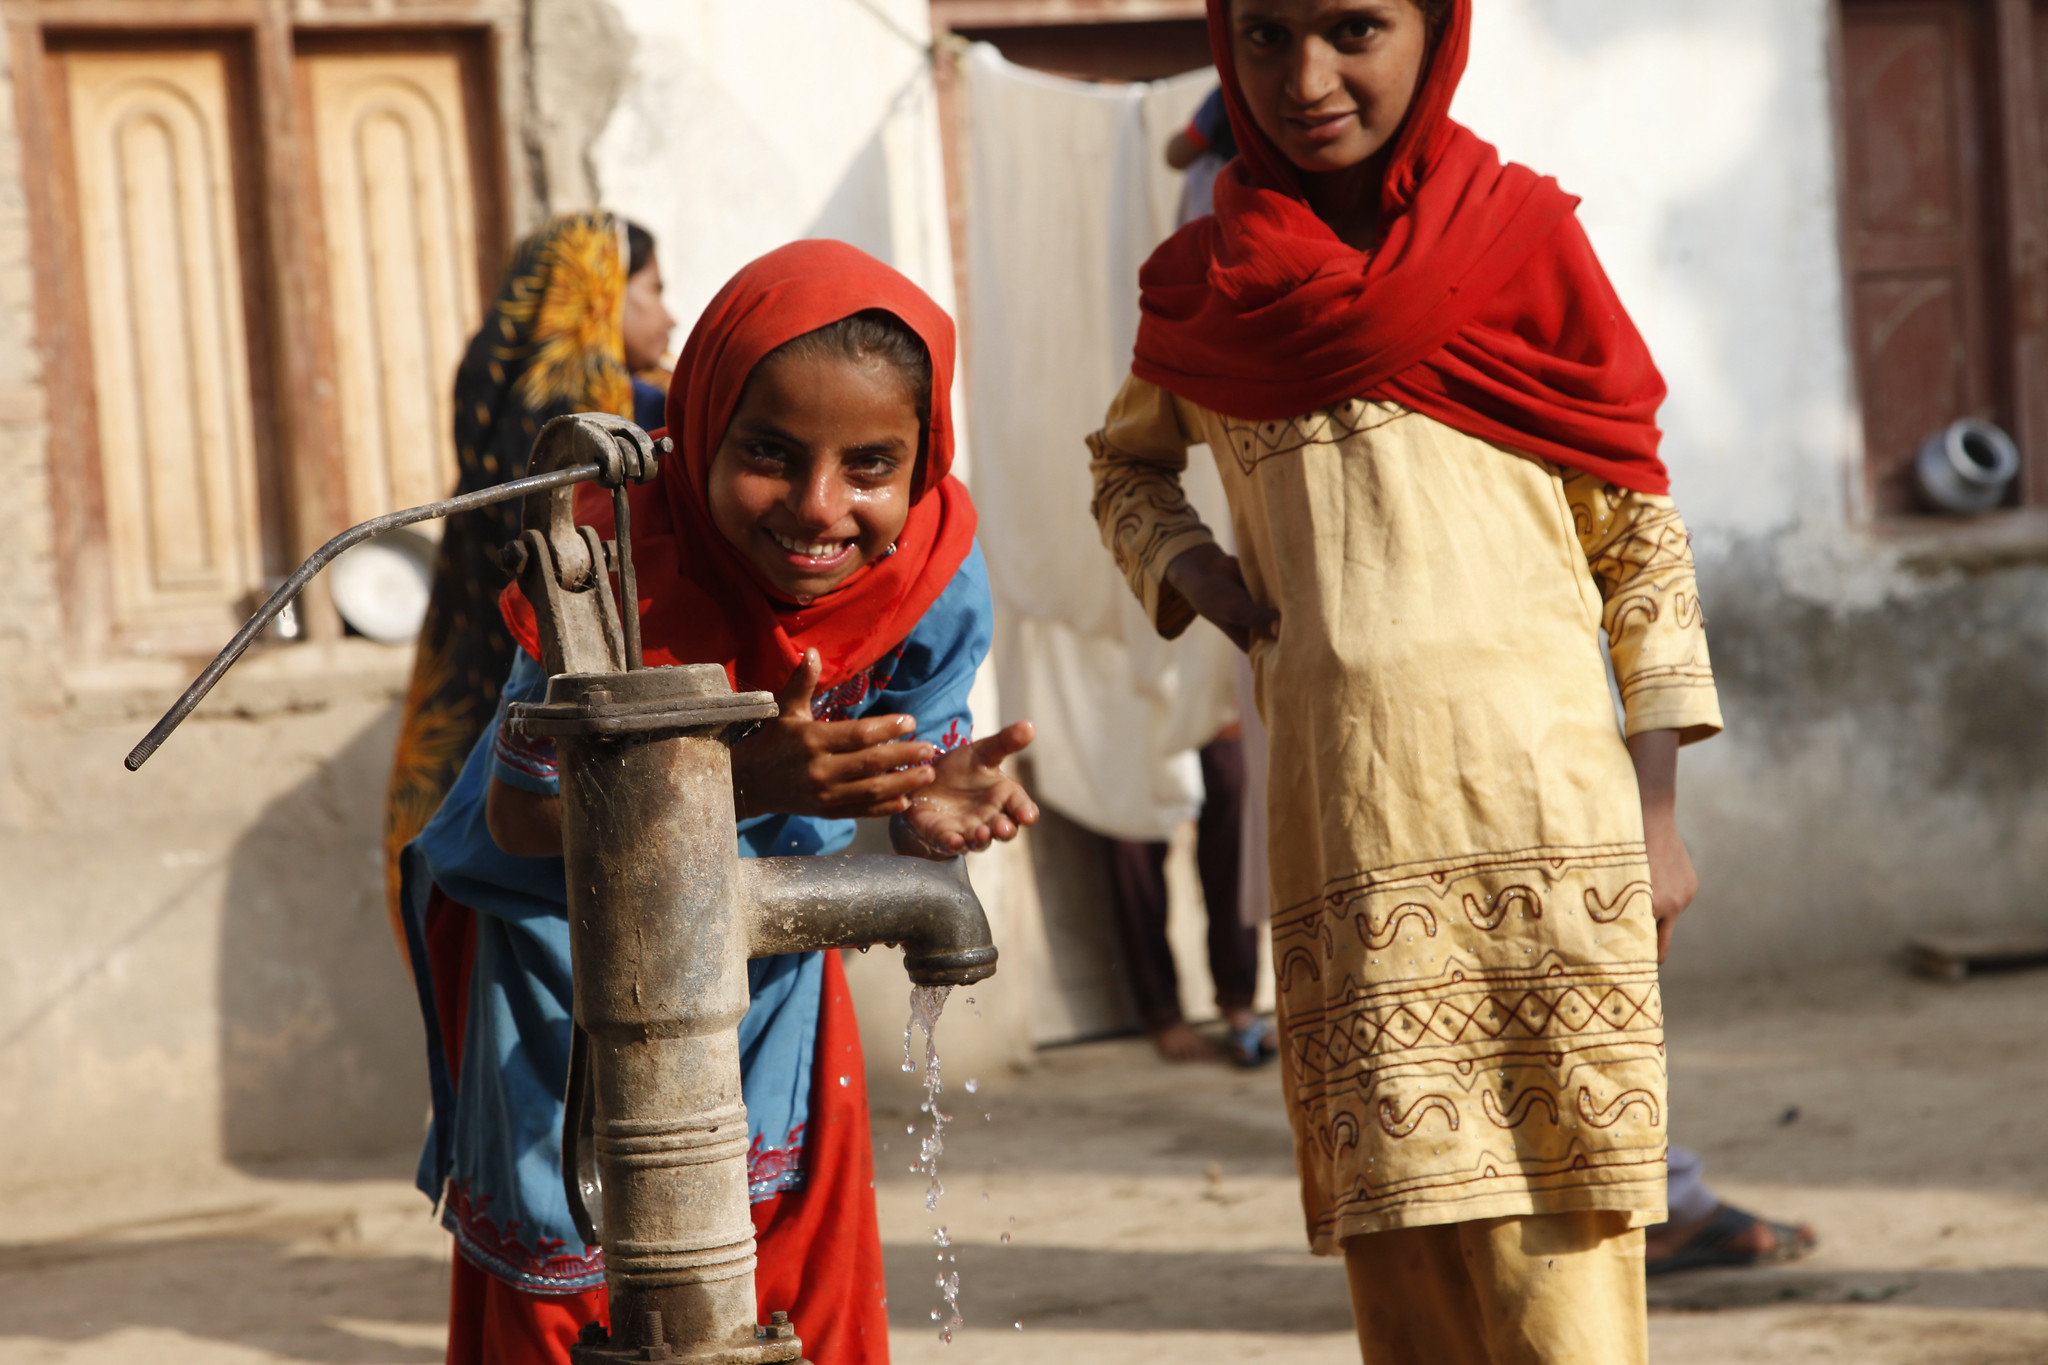 <p>Girls in Sindh, Pakistan, at their village water pump. Photo by Russell Watkins/DFID.</p>